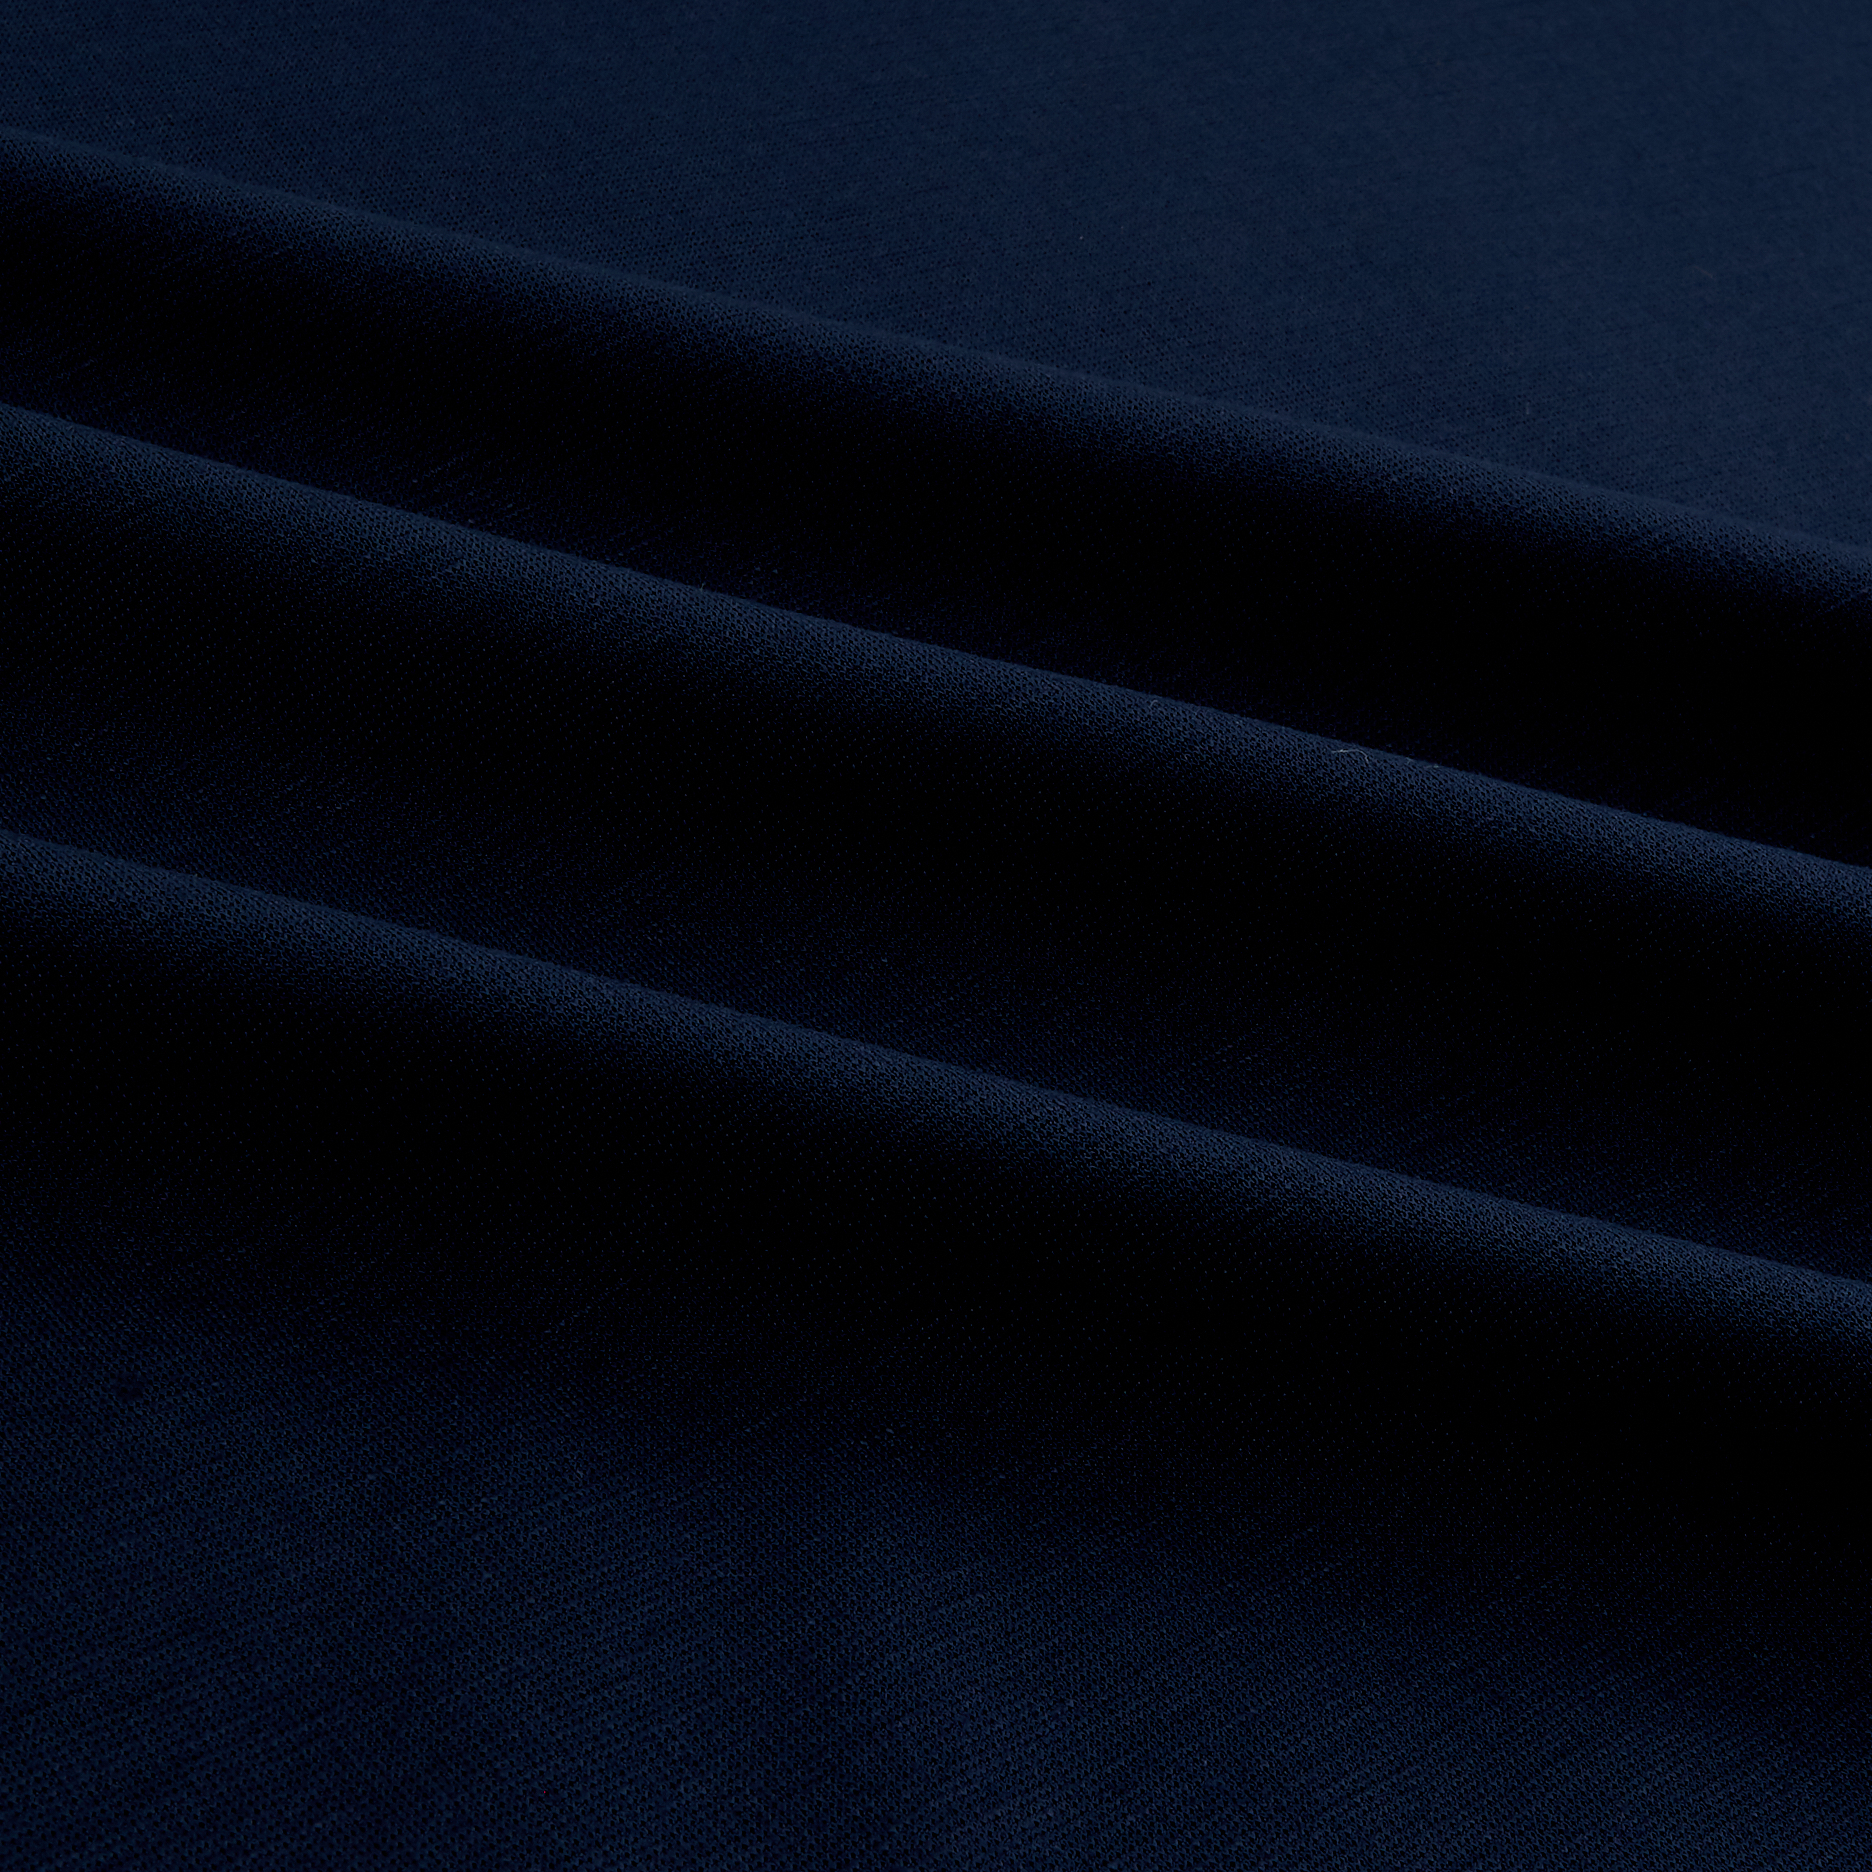 Ponte Fino Knit Navy Fabric